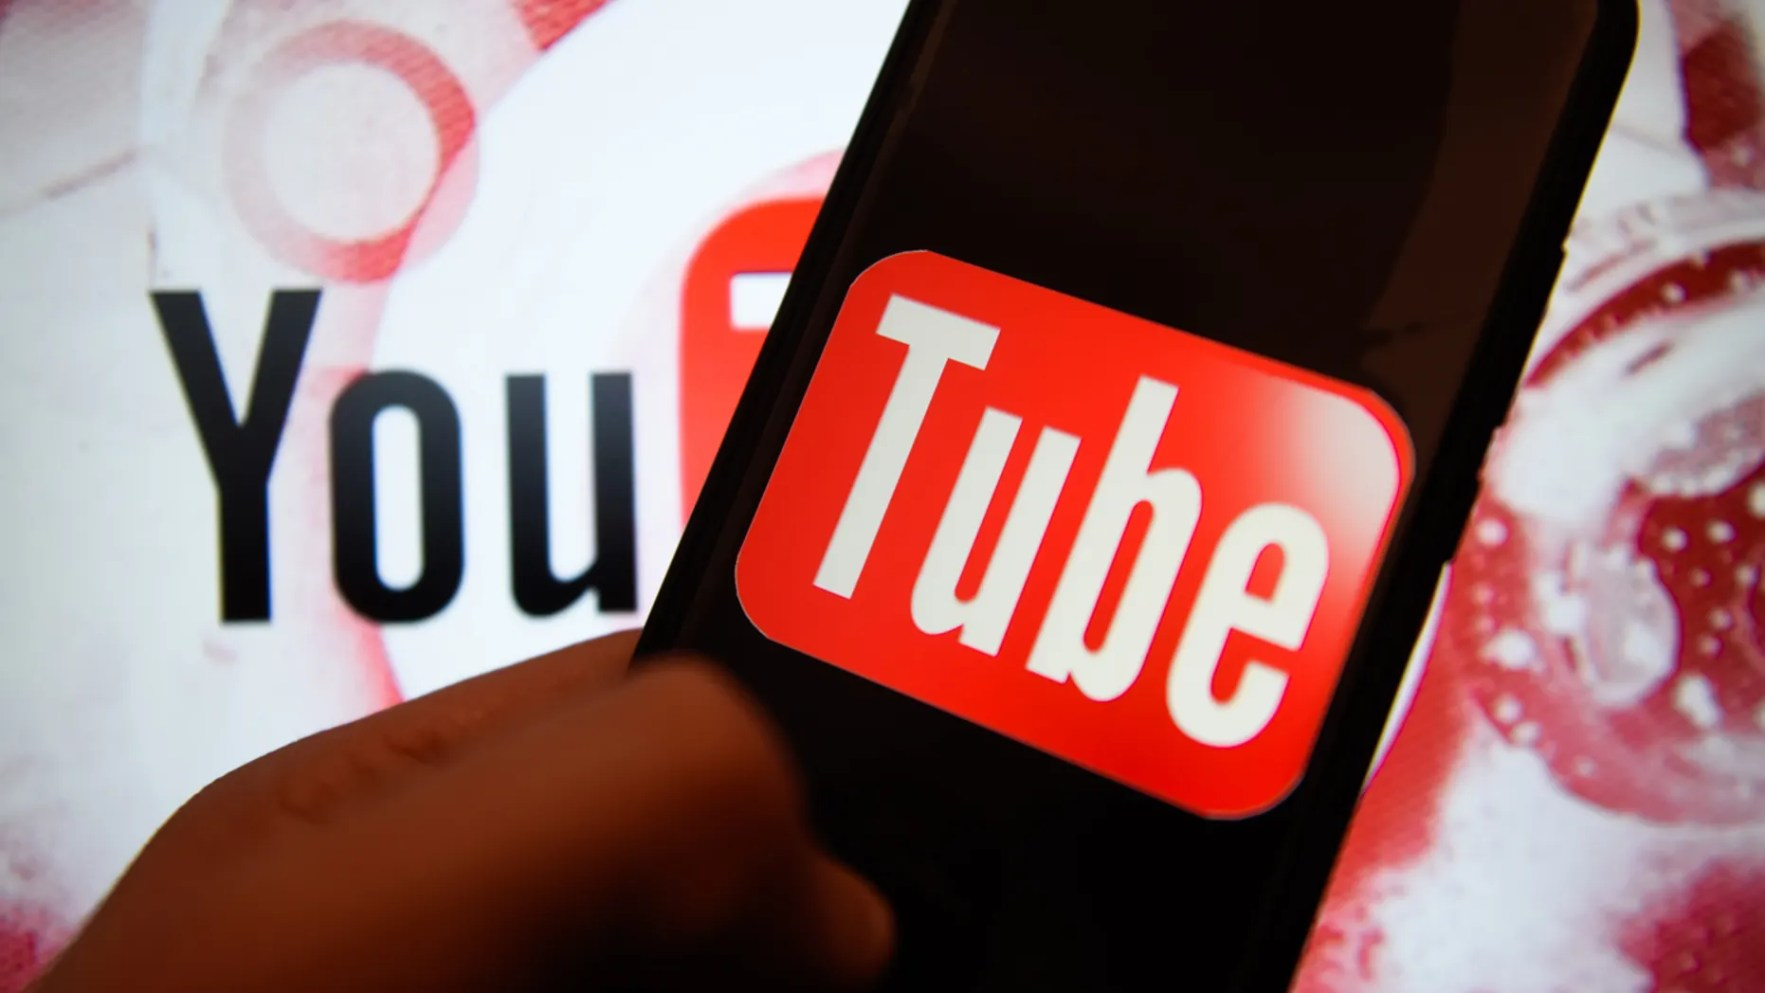 YouTube is under fire over graphic content on its platform.